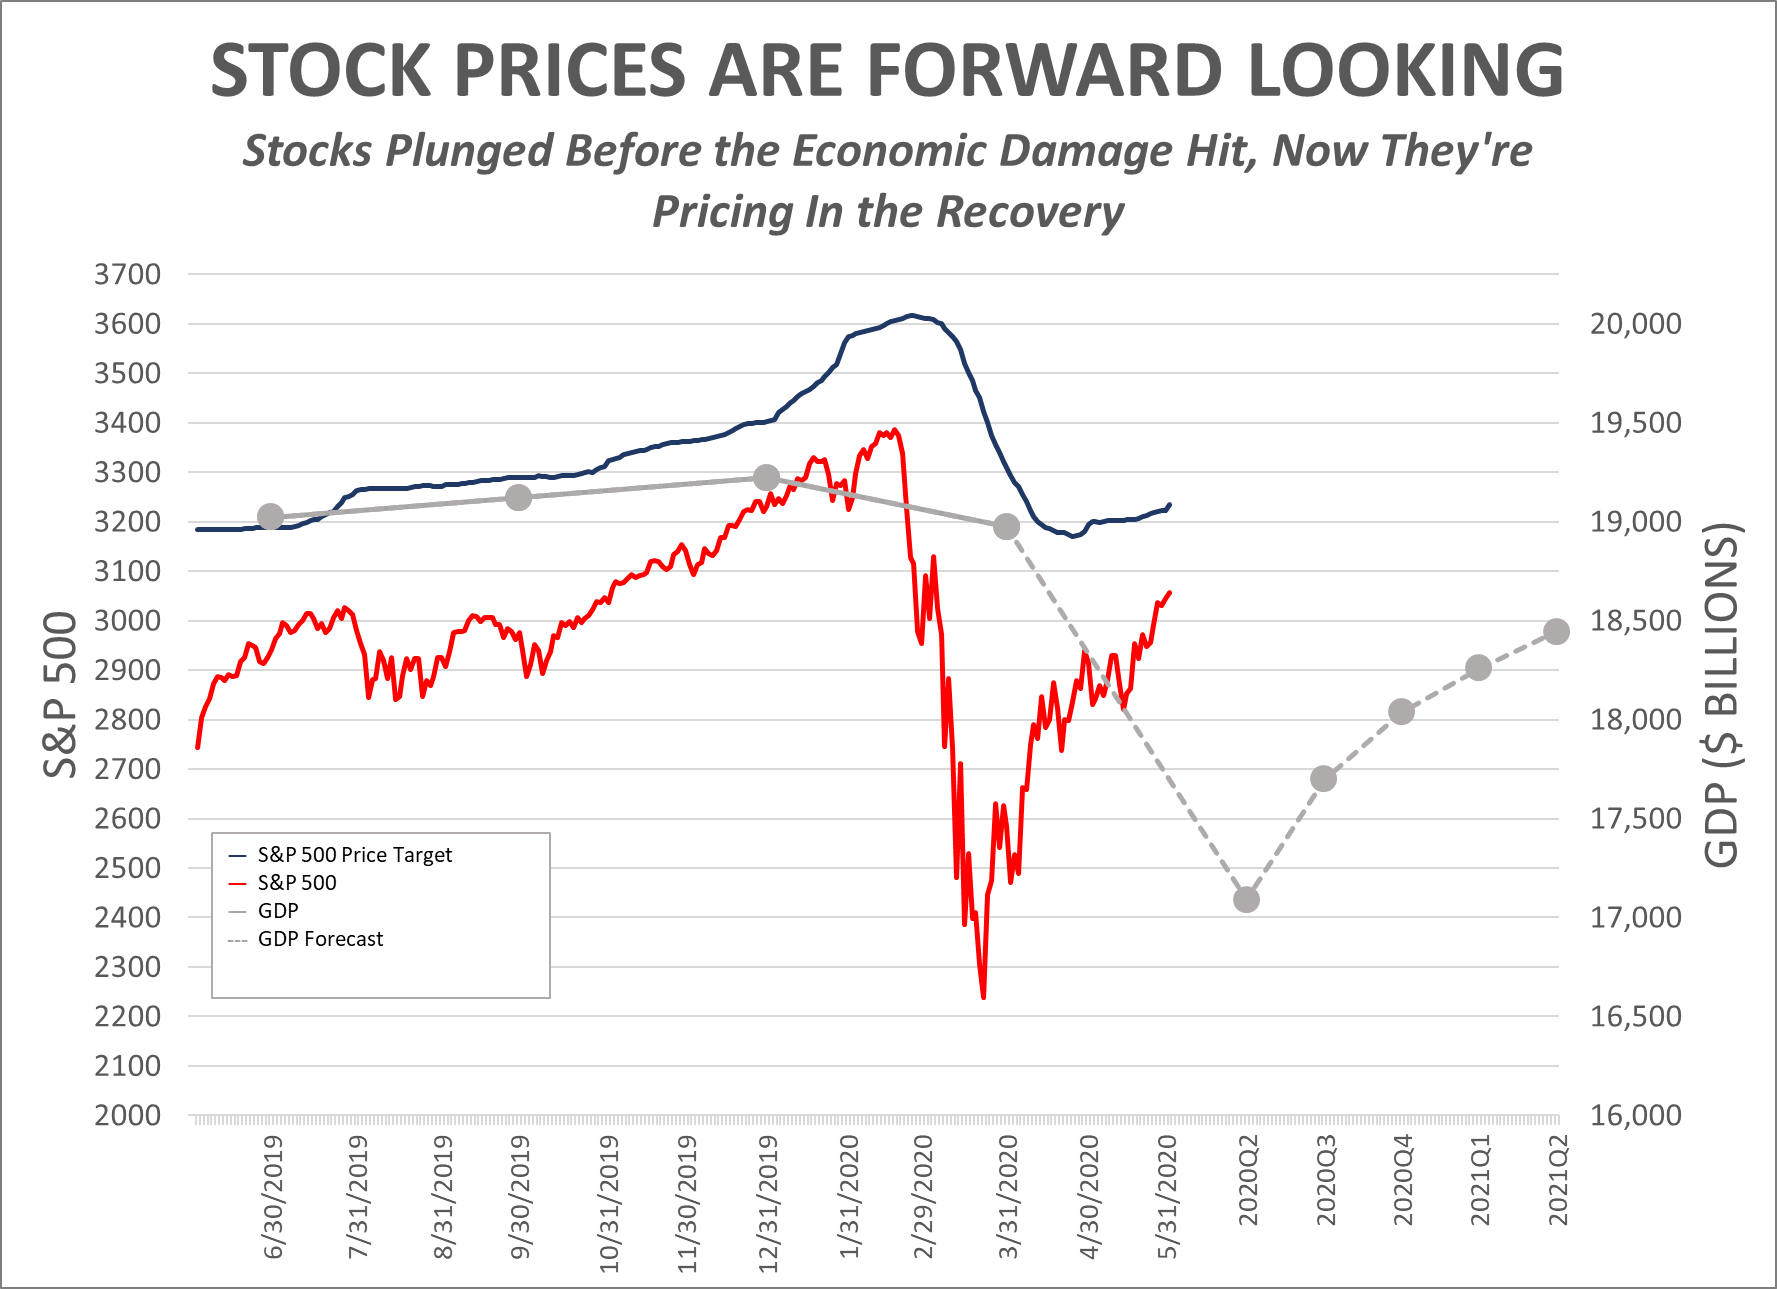 adell harriman and carpenter stock price chart covid 19